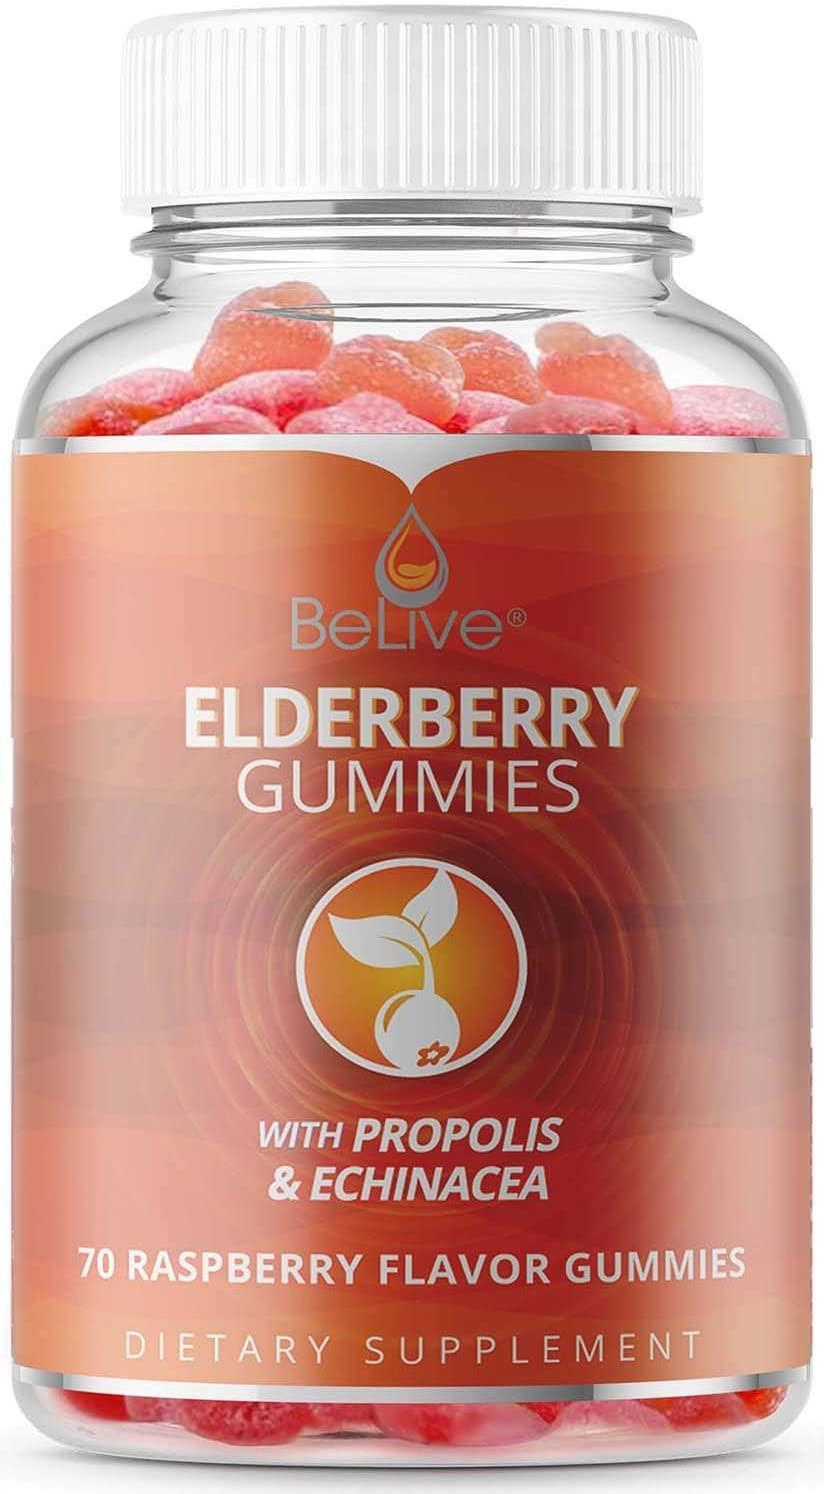 """<h3>Elderberry Immune Support Gummies</h3><br>Instead of going to the regular vitamin (or packets of Emergen-C) route, try this bottle of immune-support gummies. With over 6,000 reviews and an Amazon's Choice stamp of approval, these supplements are infused with vitamin C, propolis, echinacea-Sambucus, tart elderberry fruit, and all-natural raspberry flavor.<br><br><strong>BeLive</strong> Elderberry Gummies With Vitamin C (70 Count), $, available at <a href=""""https://amzn.to/3of1shw"""" rel=""""nofollow noopener"""" target=""""_blank"""" data-ylk=""""slk:Amazon"""" class=""""link rapid-noclick-resp"""">Amazon</a>"""